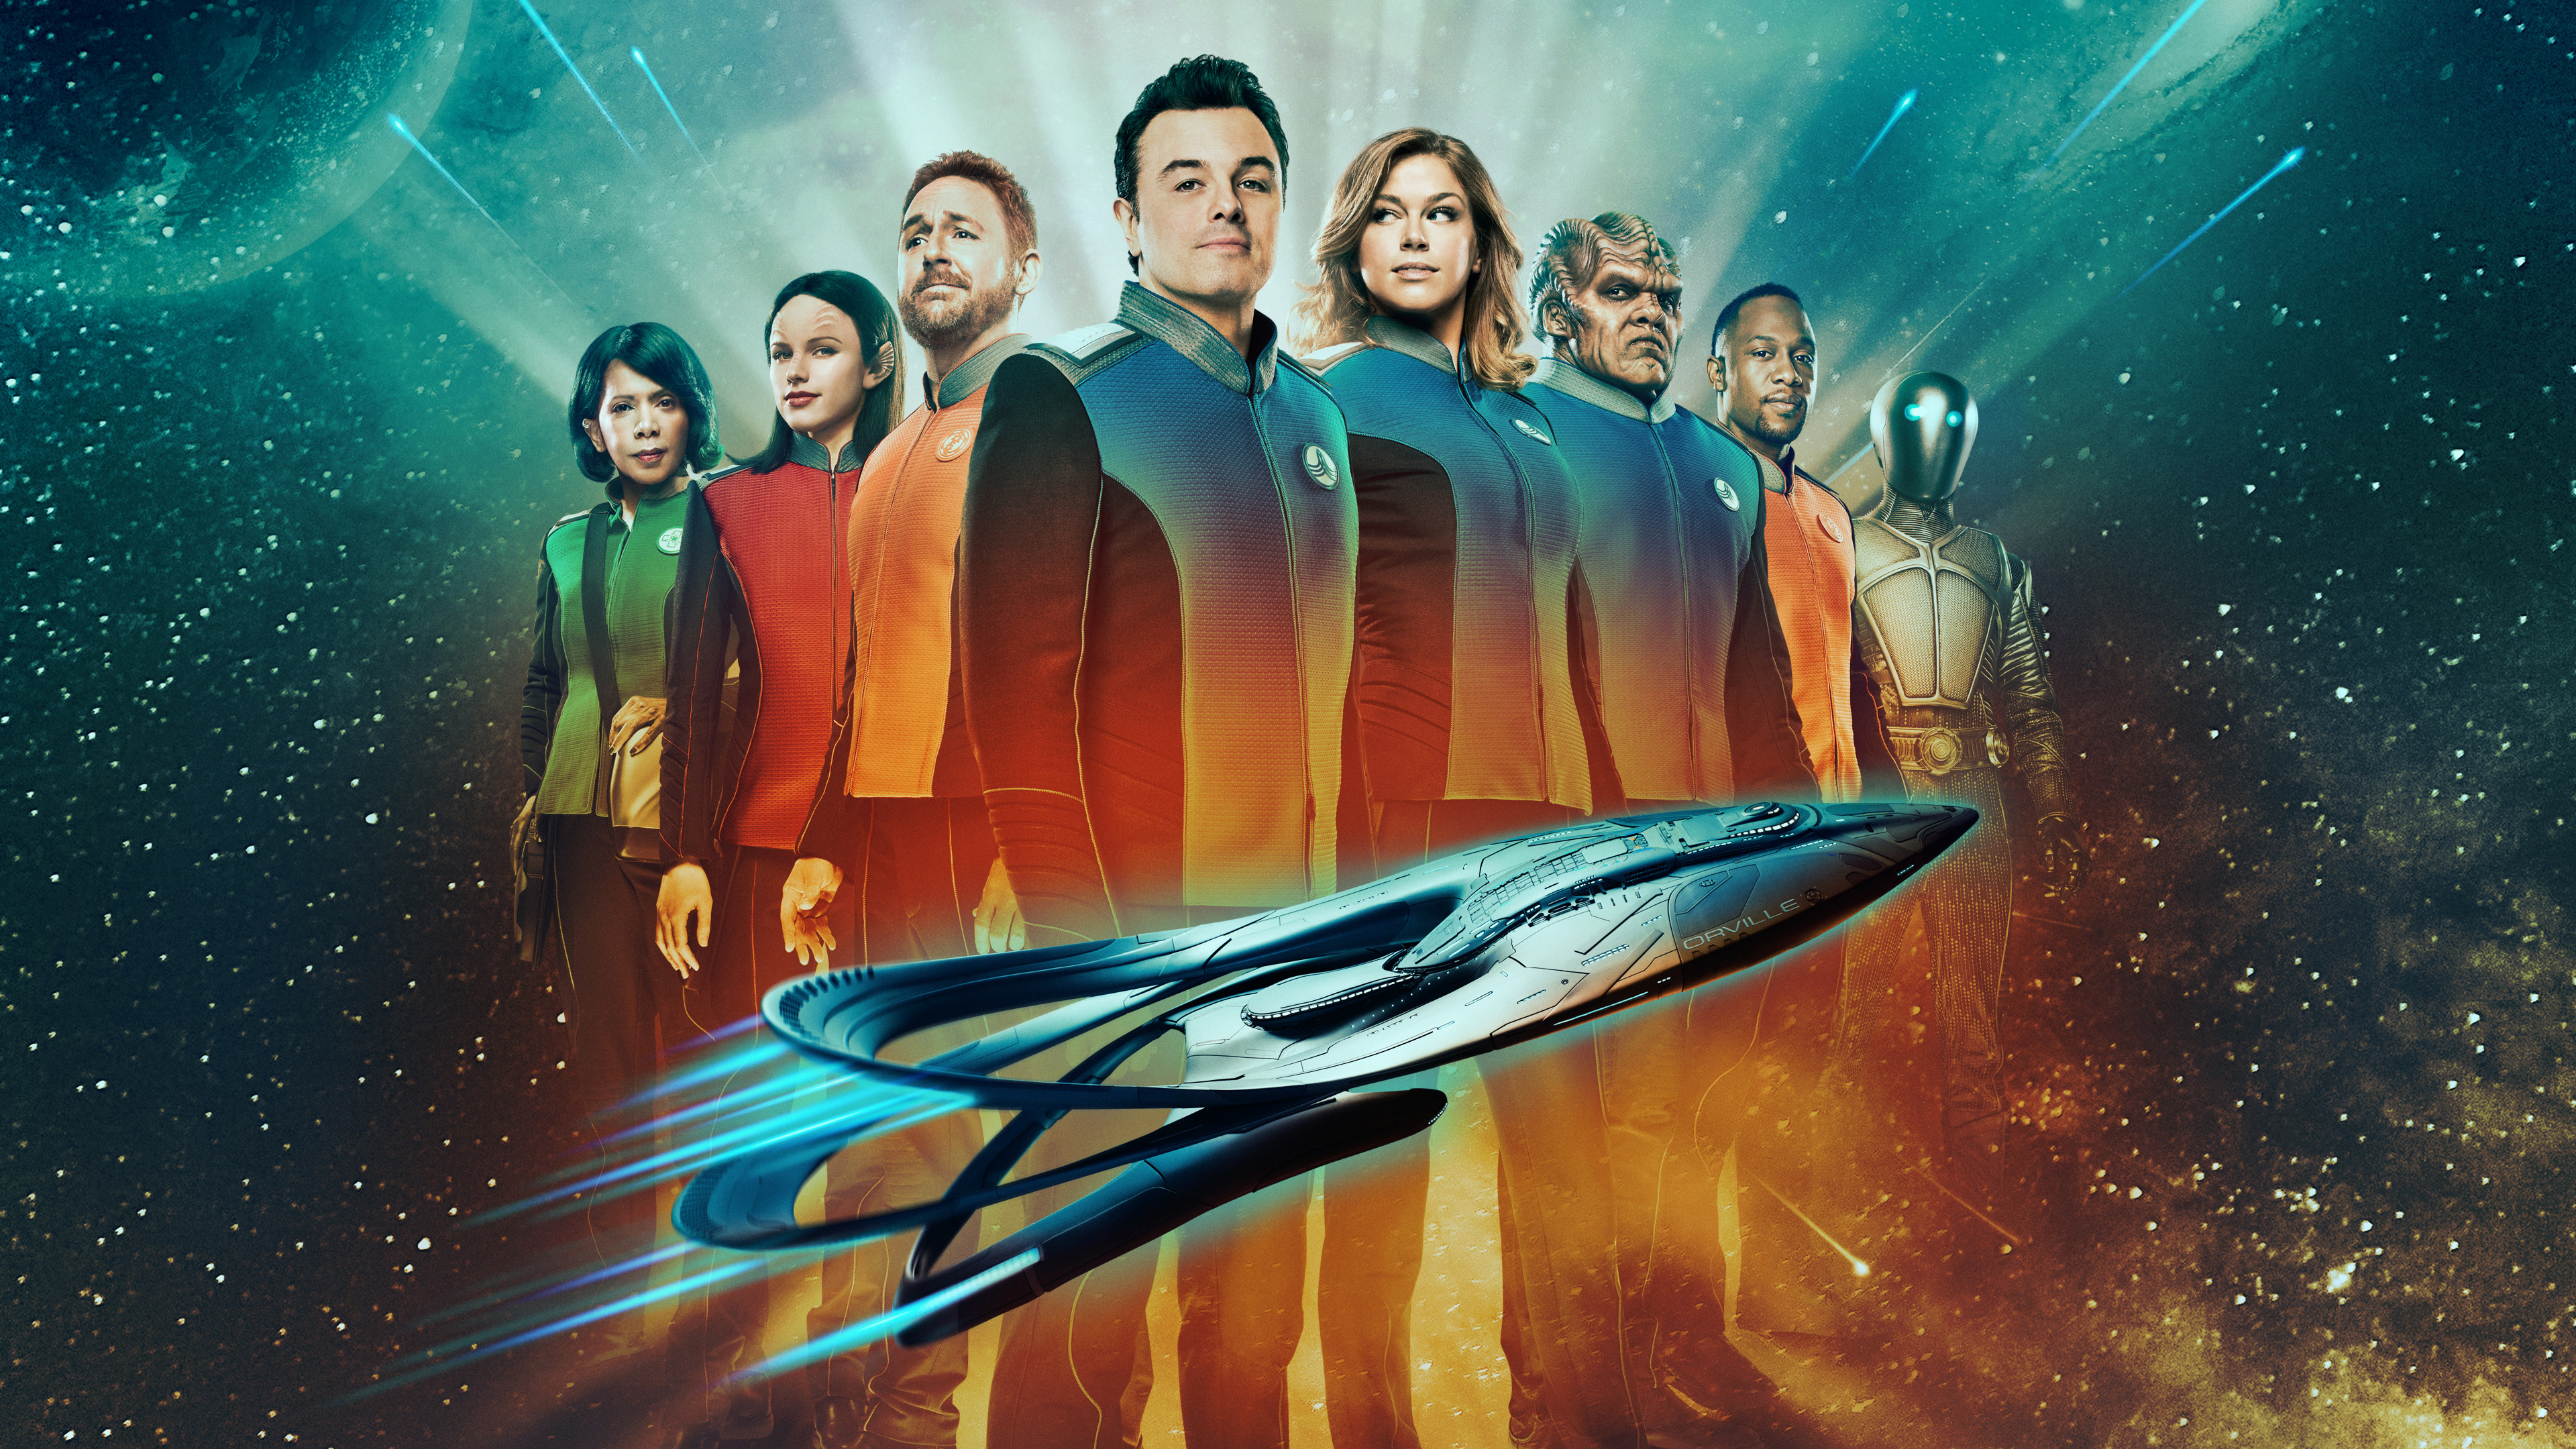 The Orville 4k, HD Tv Shows, 4k Wallpapers, Images